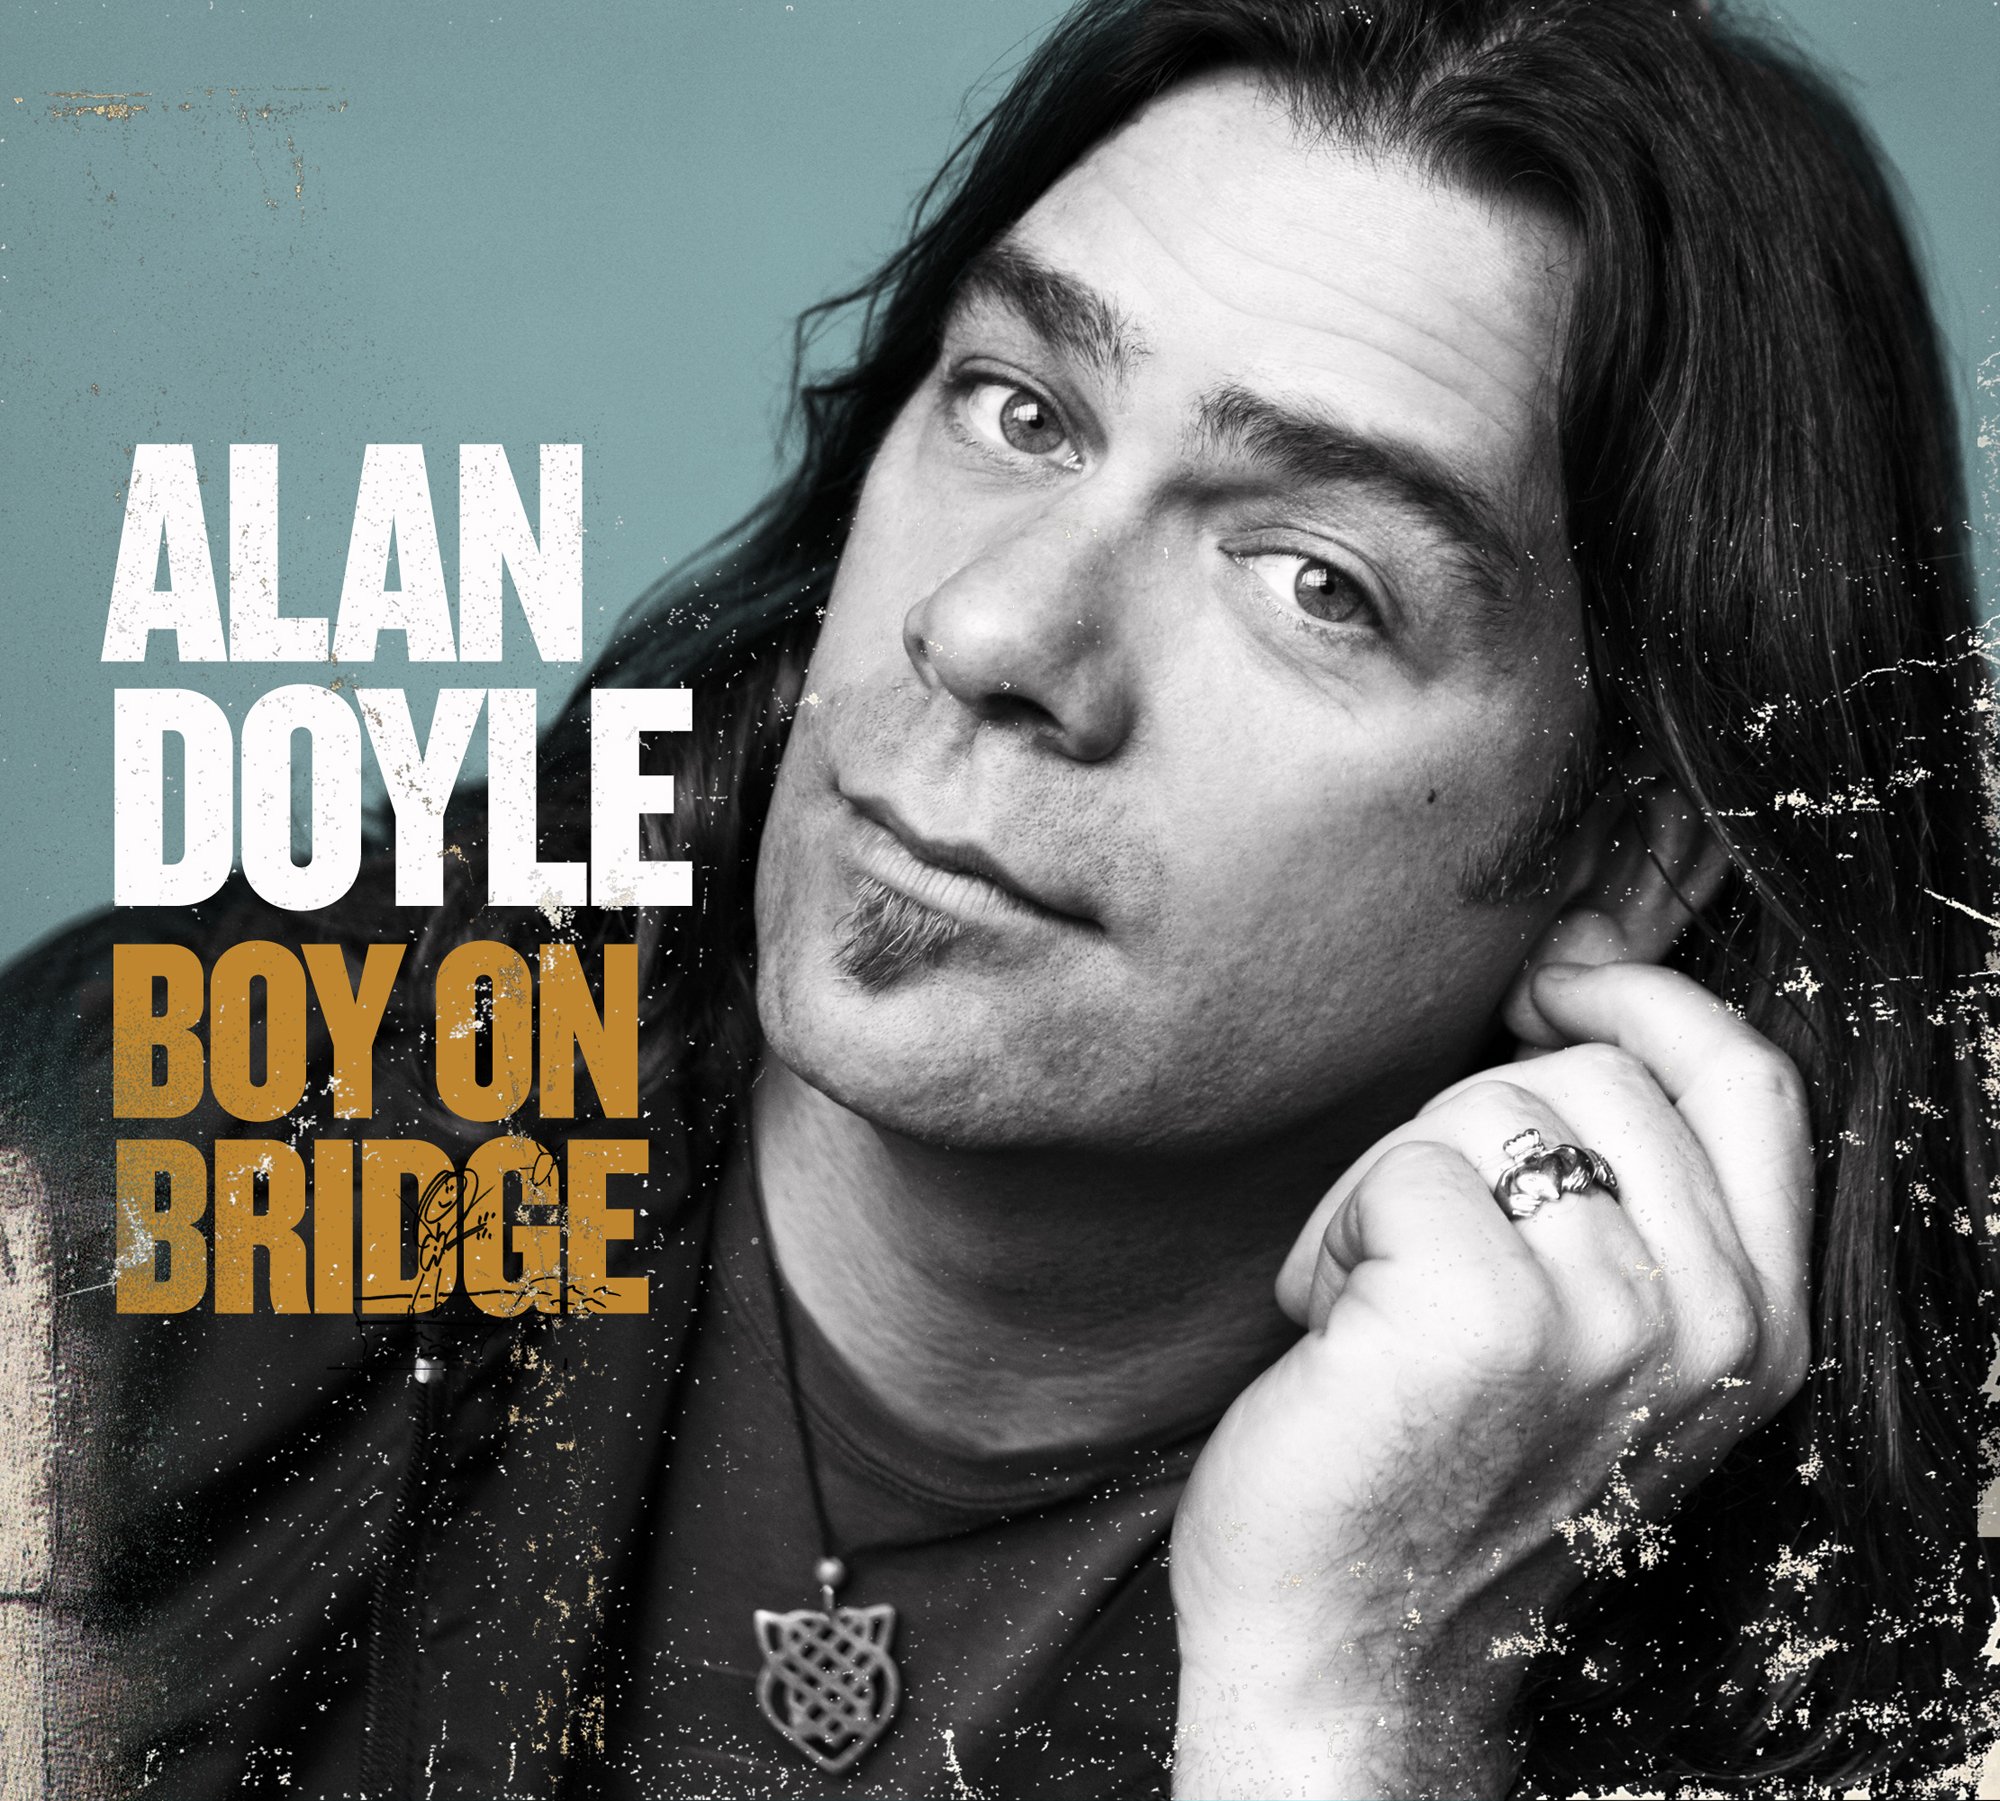 alan doyle lyrics